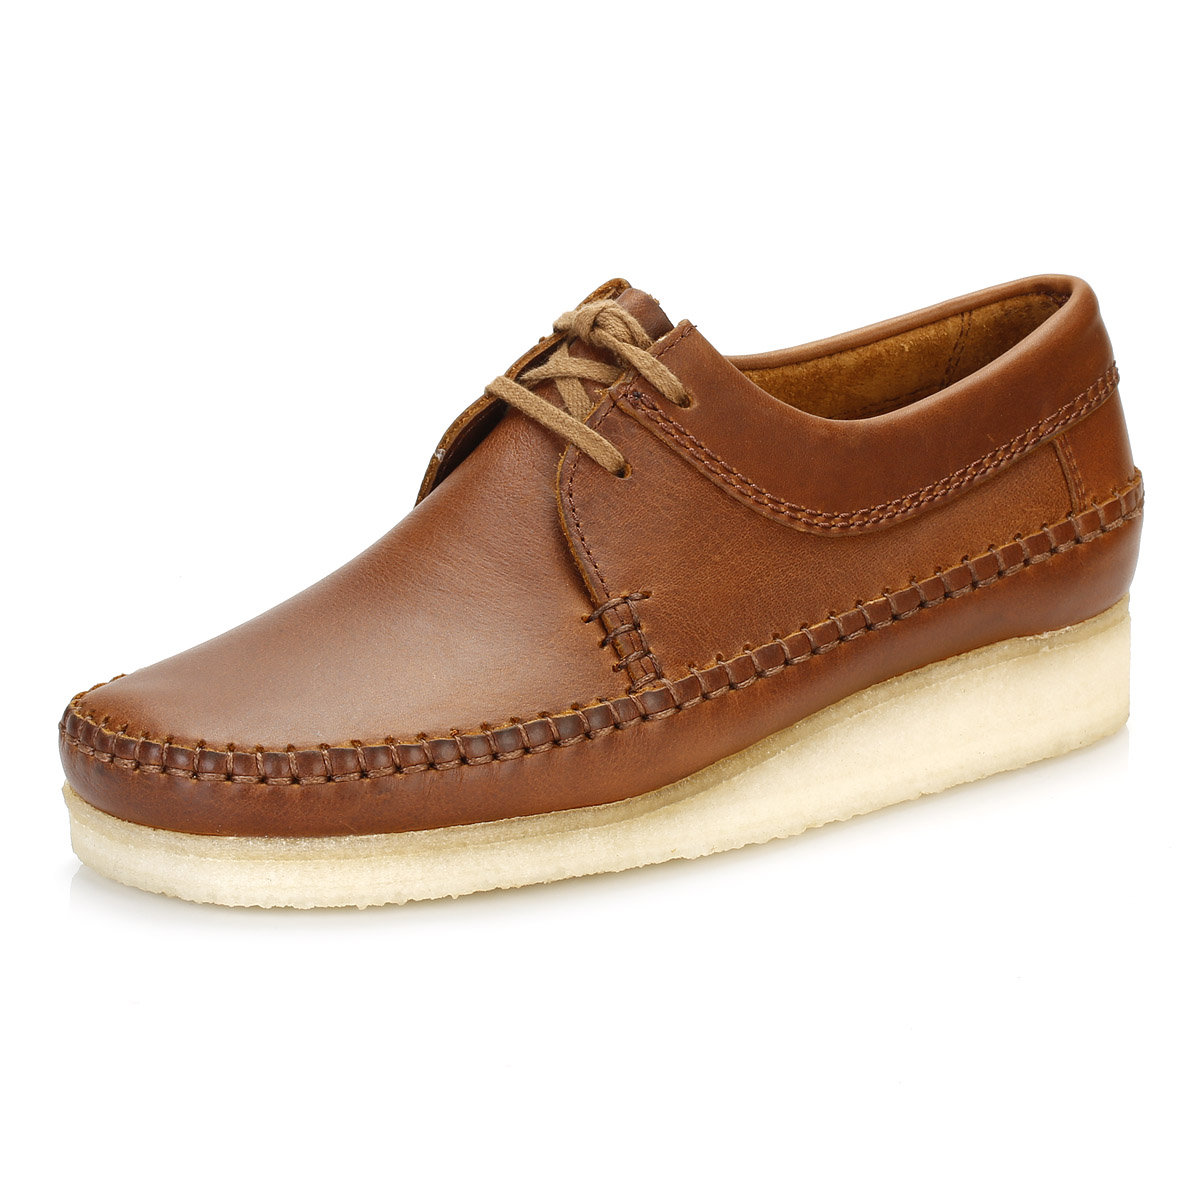 Clarks Mens Brown Leather Slip On Casual Shoe-52220